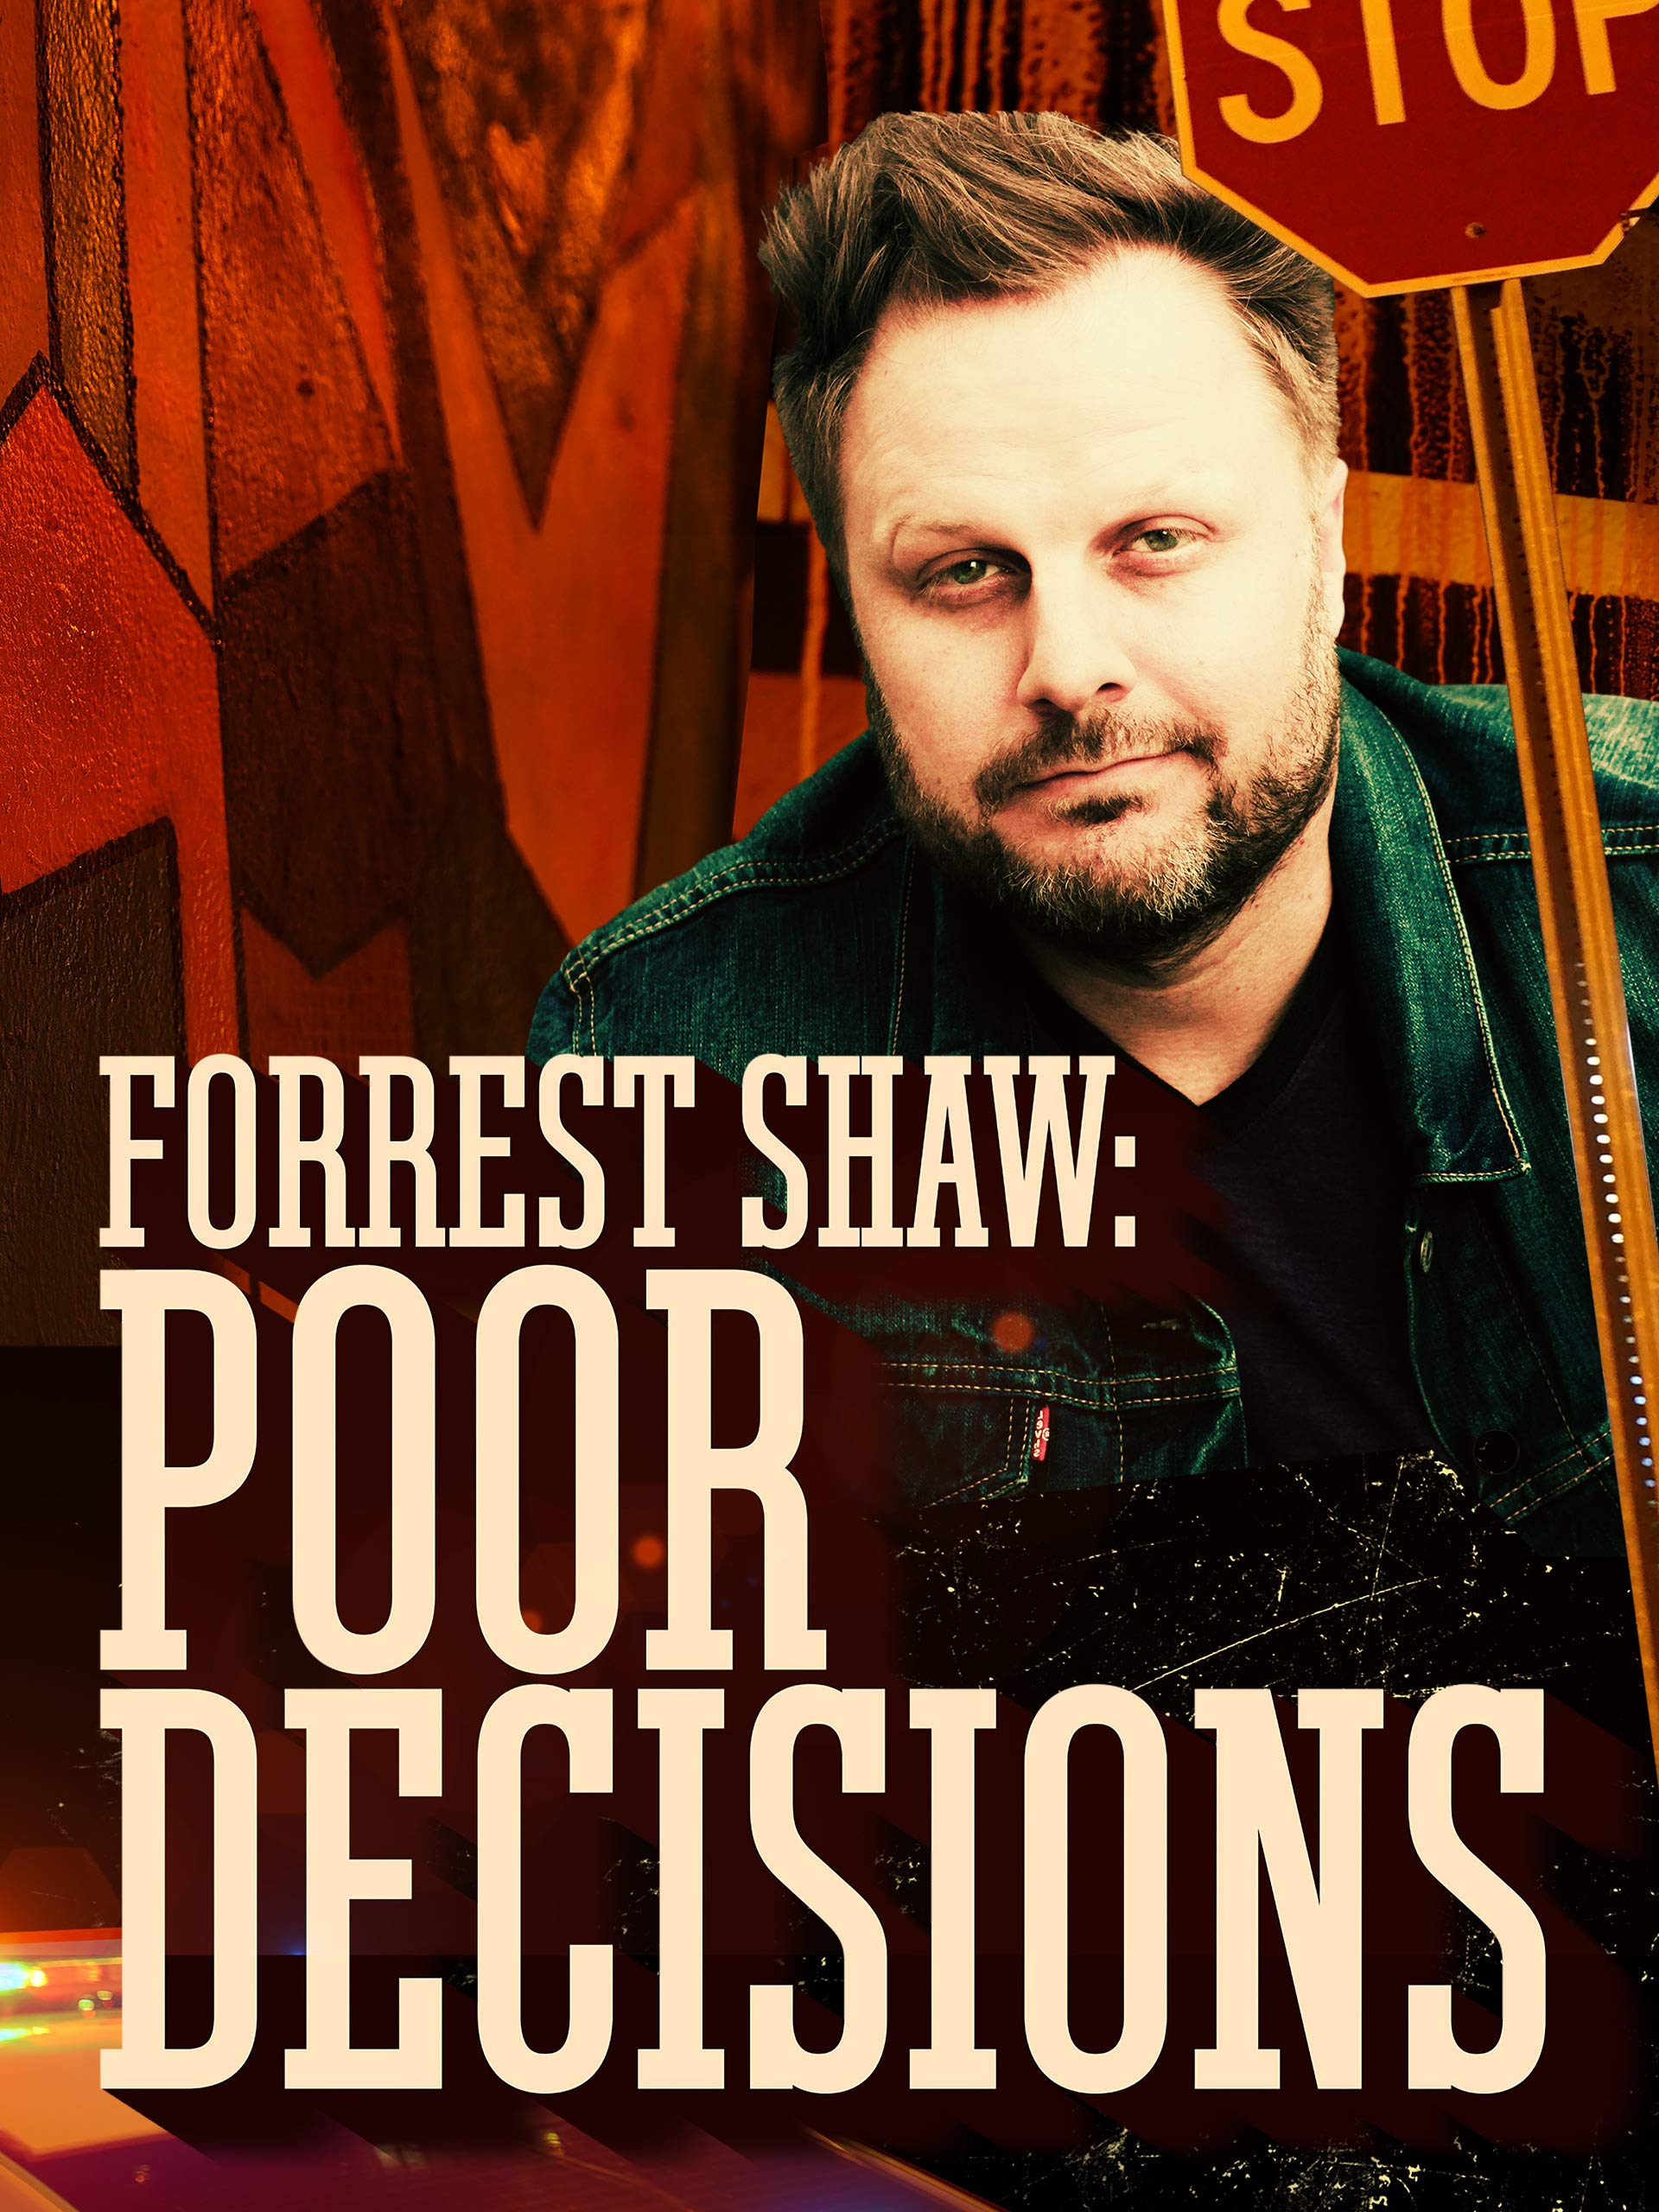 Forrest Shaw: Poor Decisions on Amazon Prime Video UK